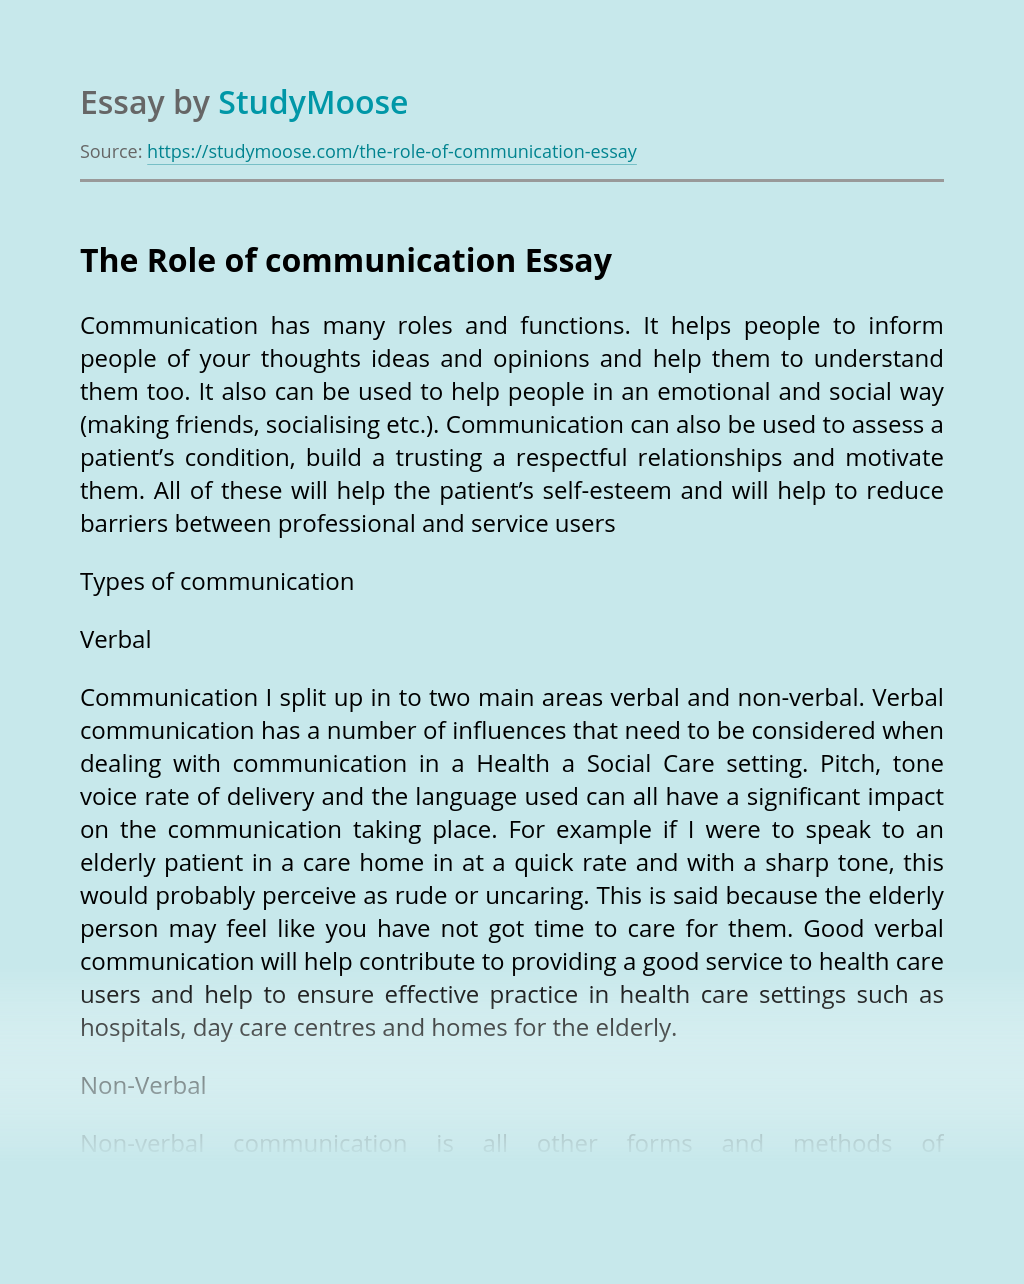 The Role of communication